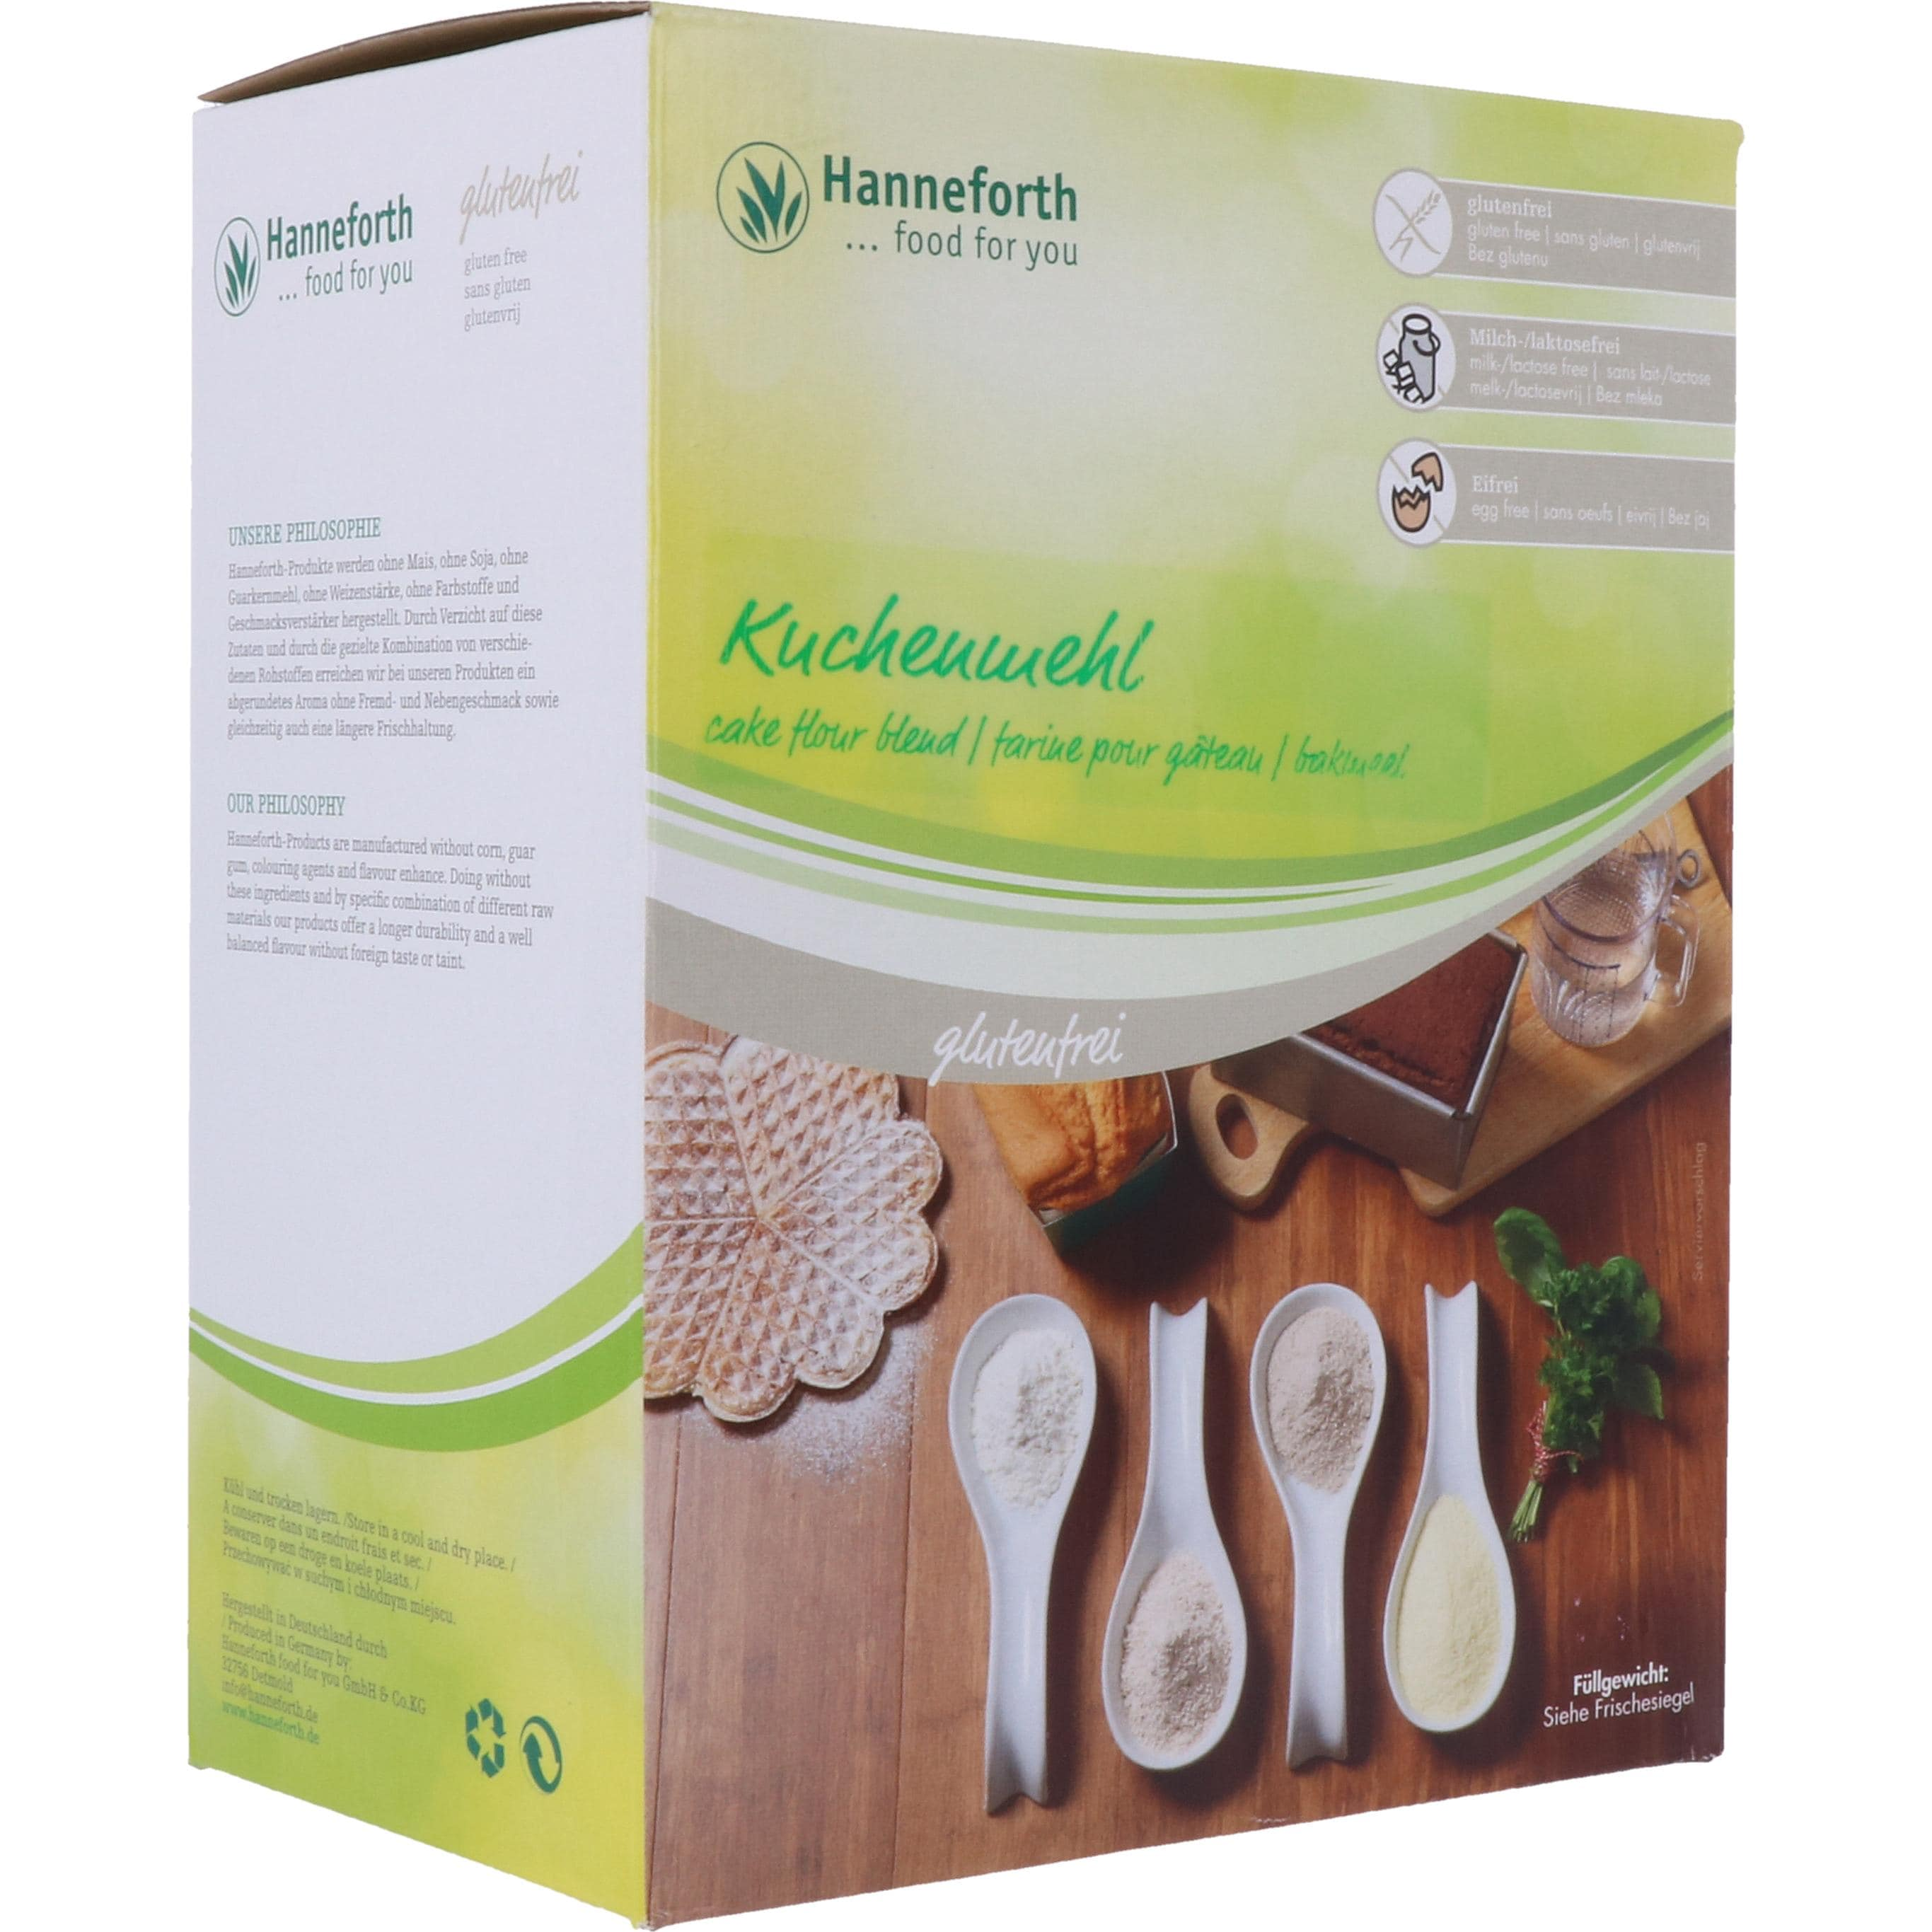 Hanneforth, food for you Kuchenmehl 1500g